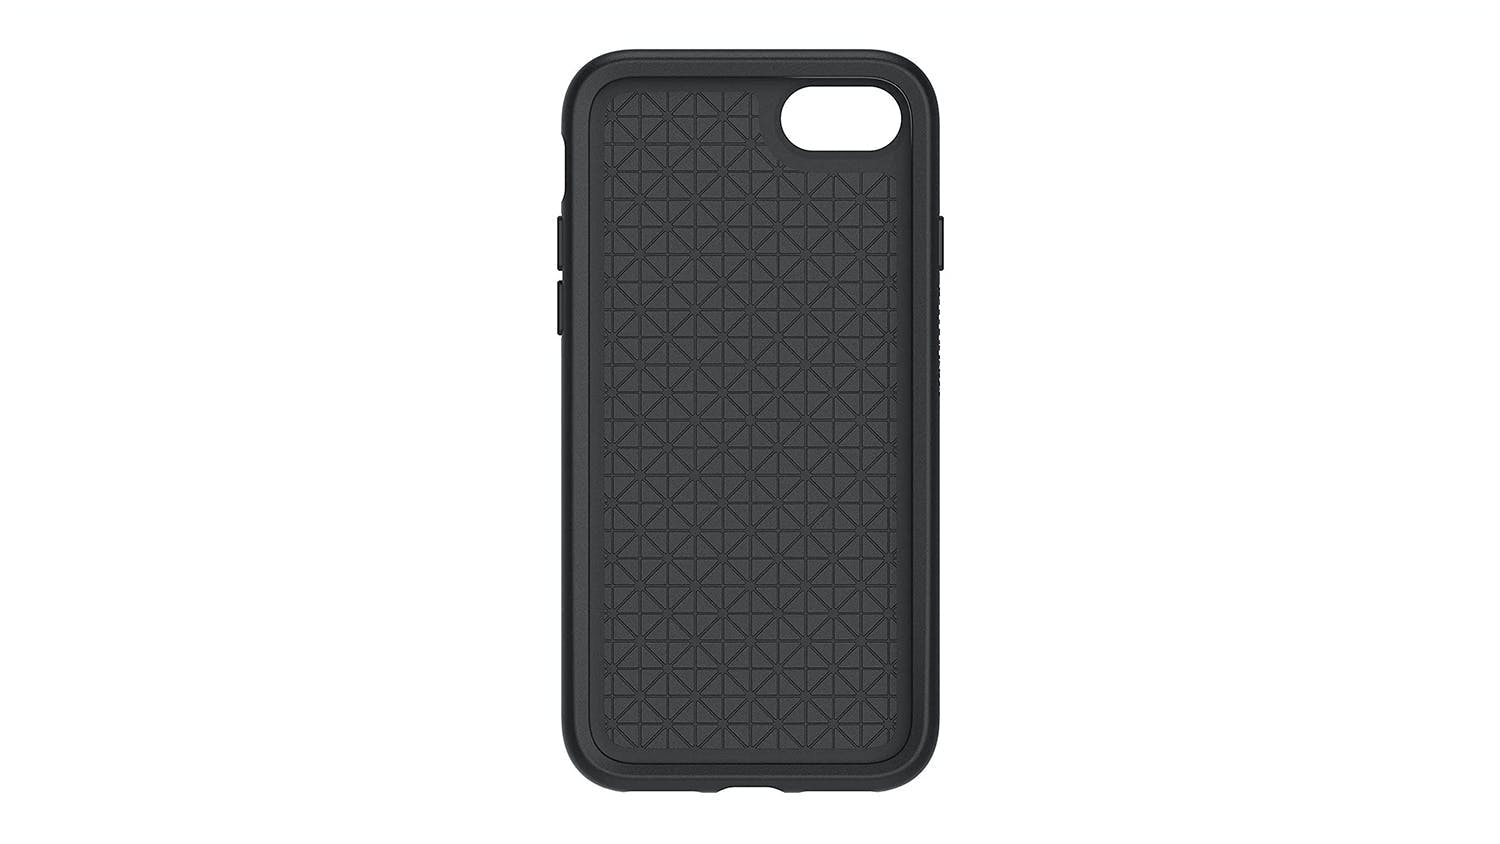 Otterbox Symmetry Case for iPhone SE (2nd Gen), 7/8 - Black